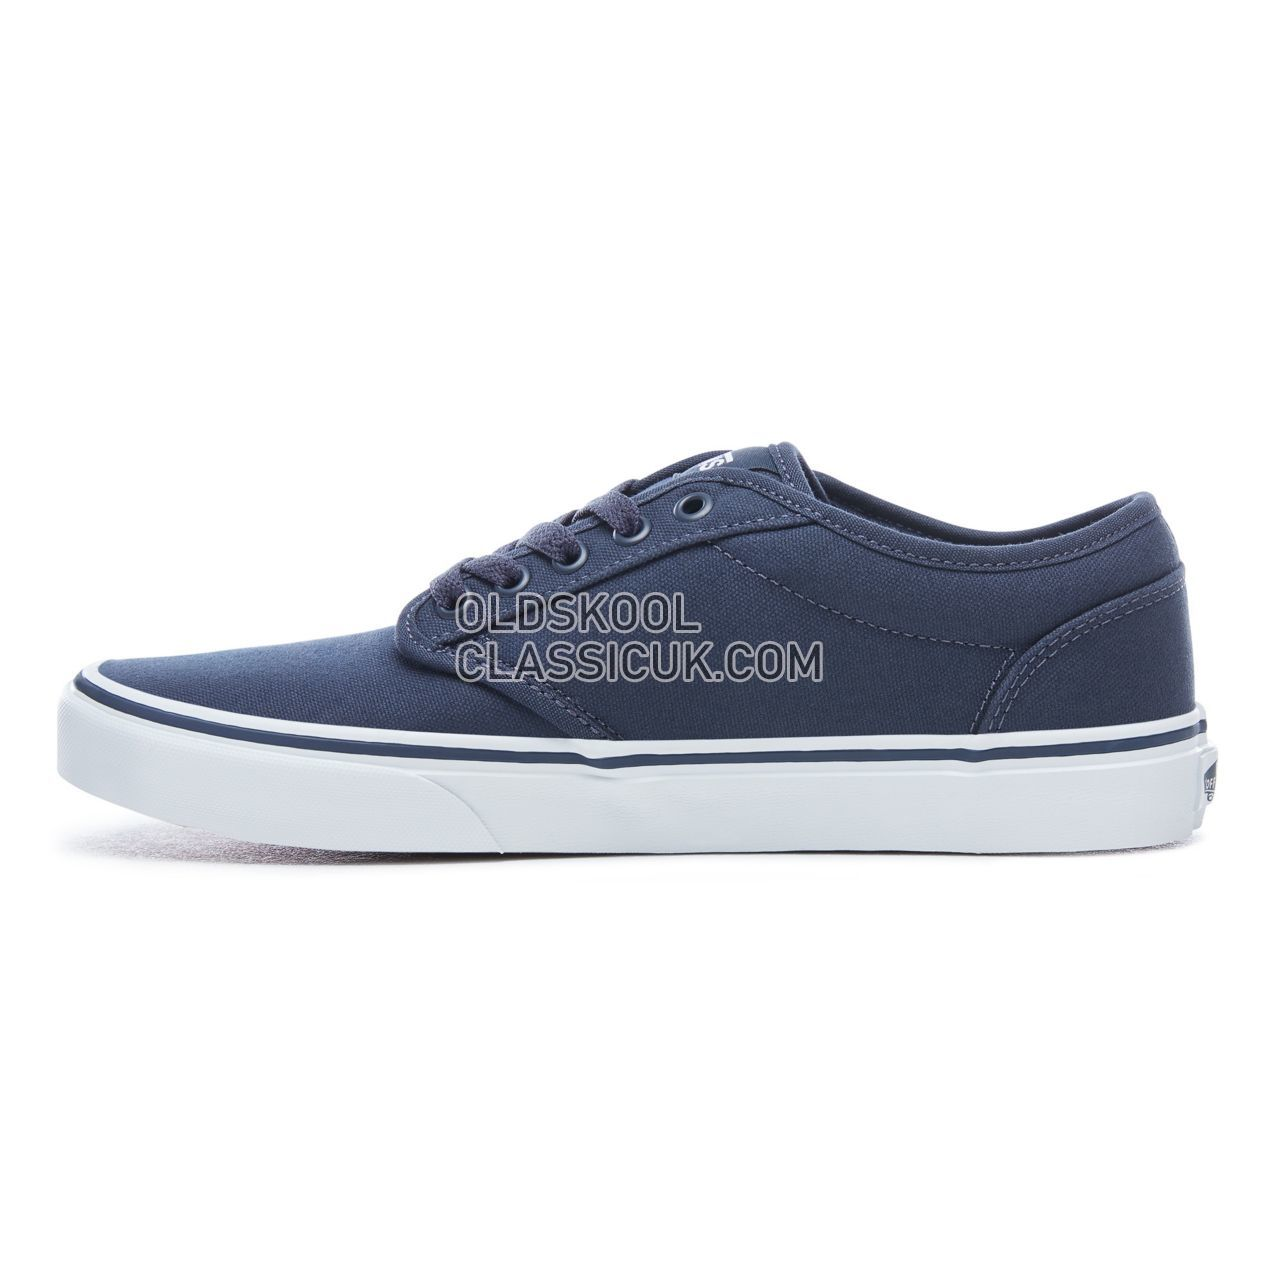 Vans Atwood Sneakers Mens Navy/White VKC44K1 Shoes